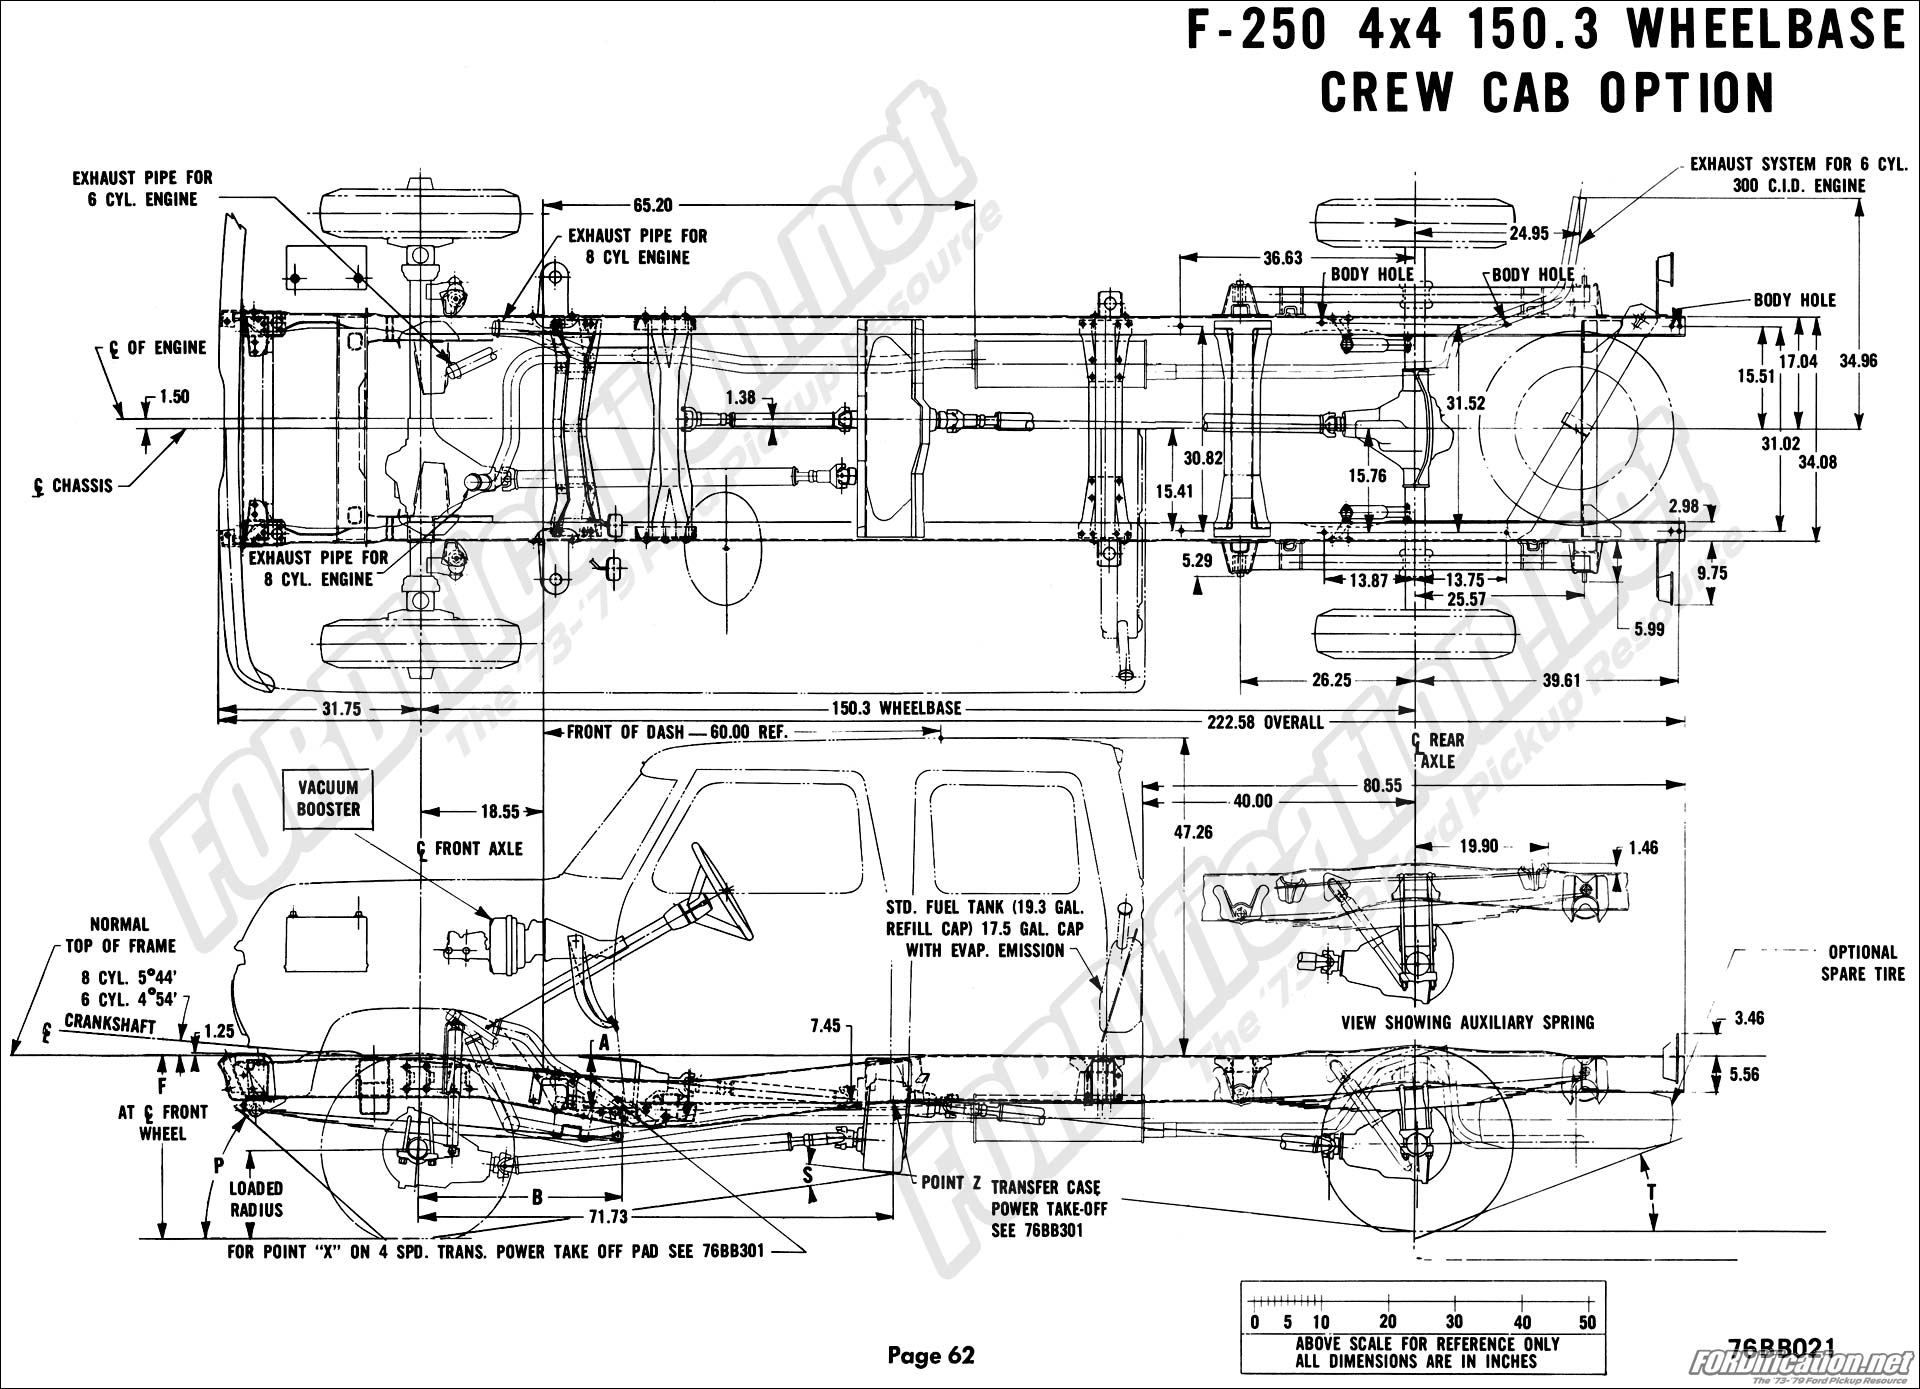 2002 Ford Ranger Frame Diagram Trusted Wiring Diagrams Transfer Case Complete U2022